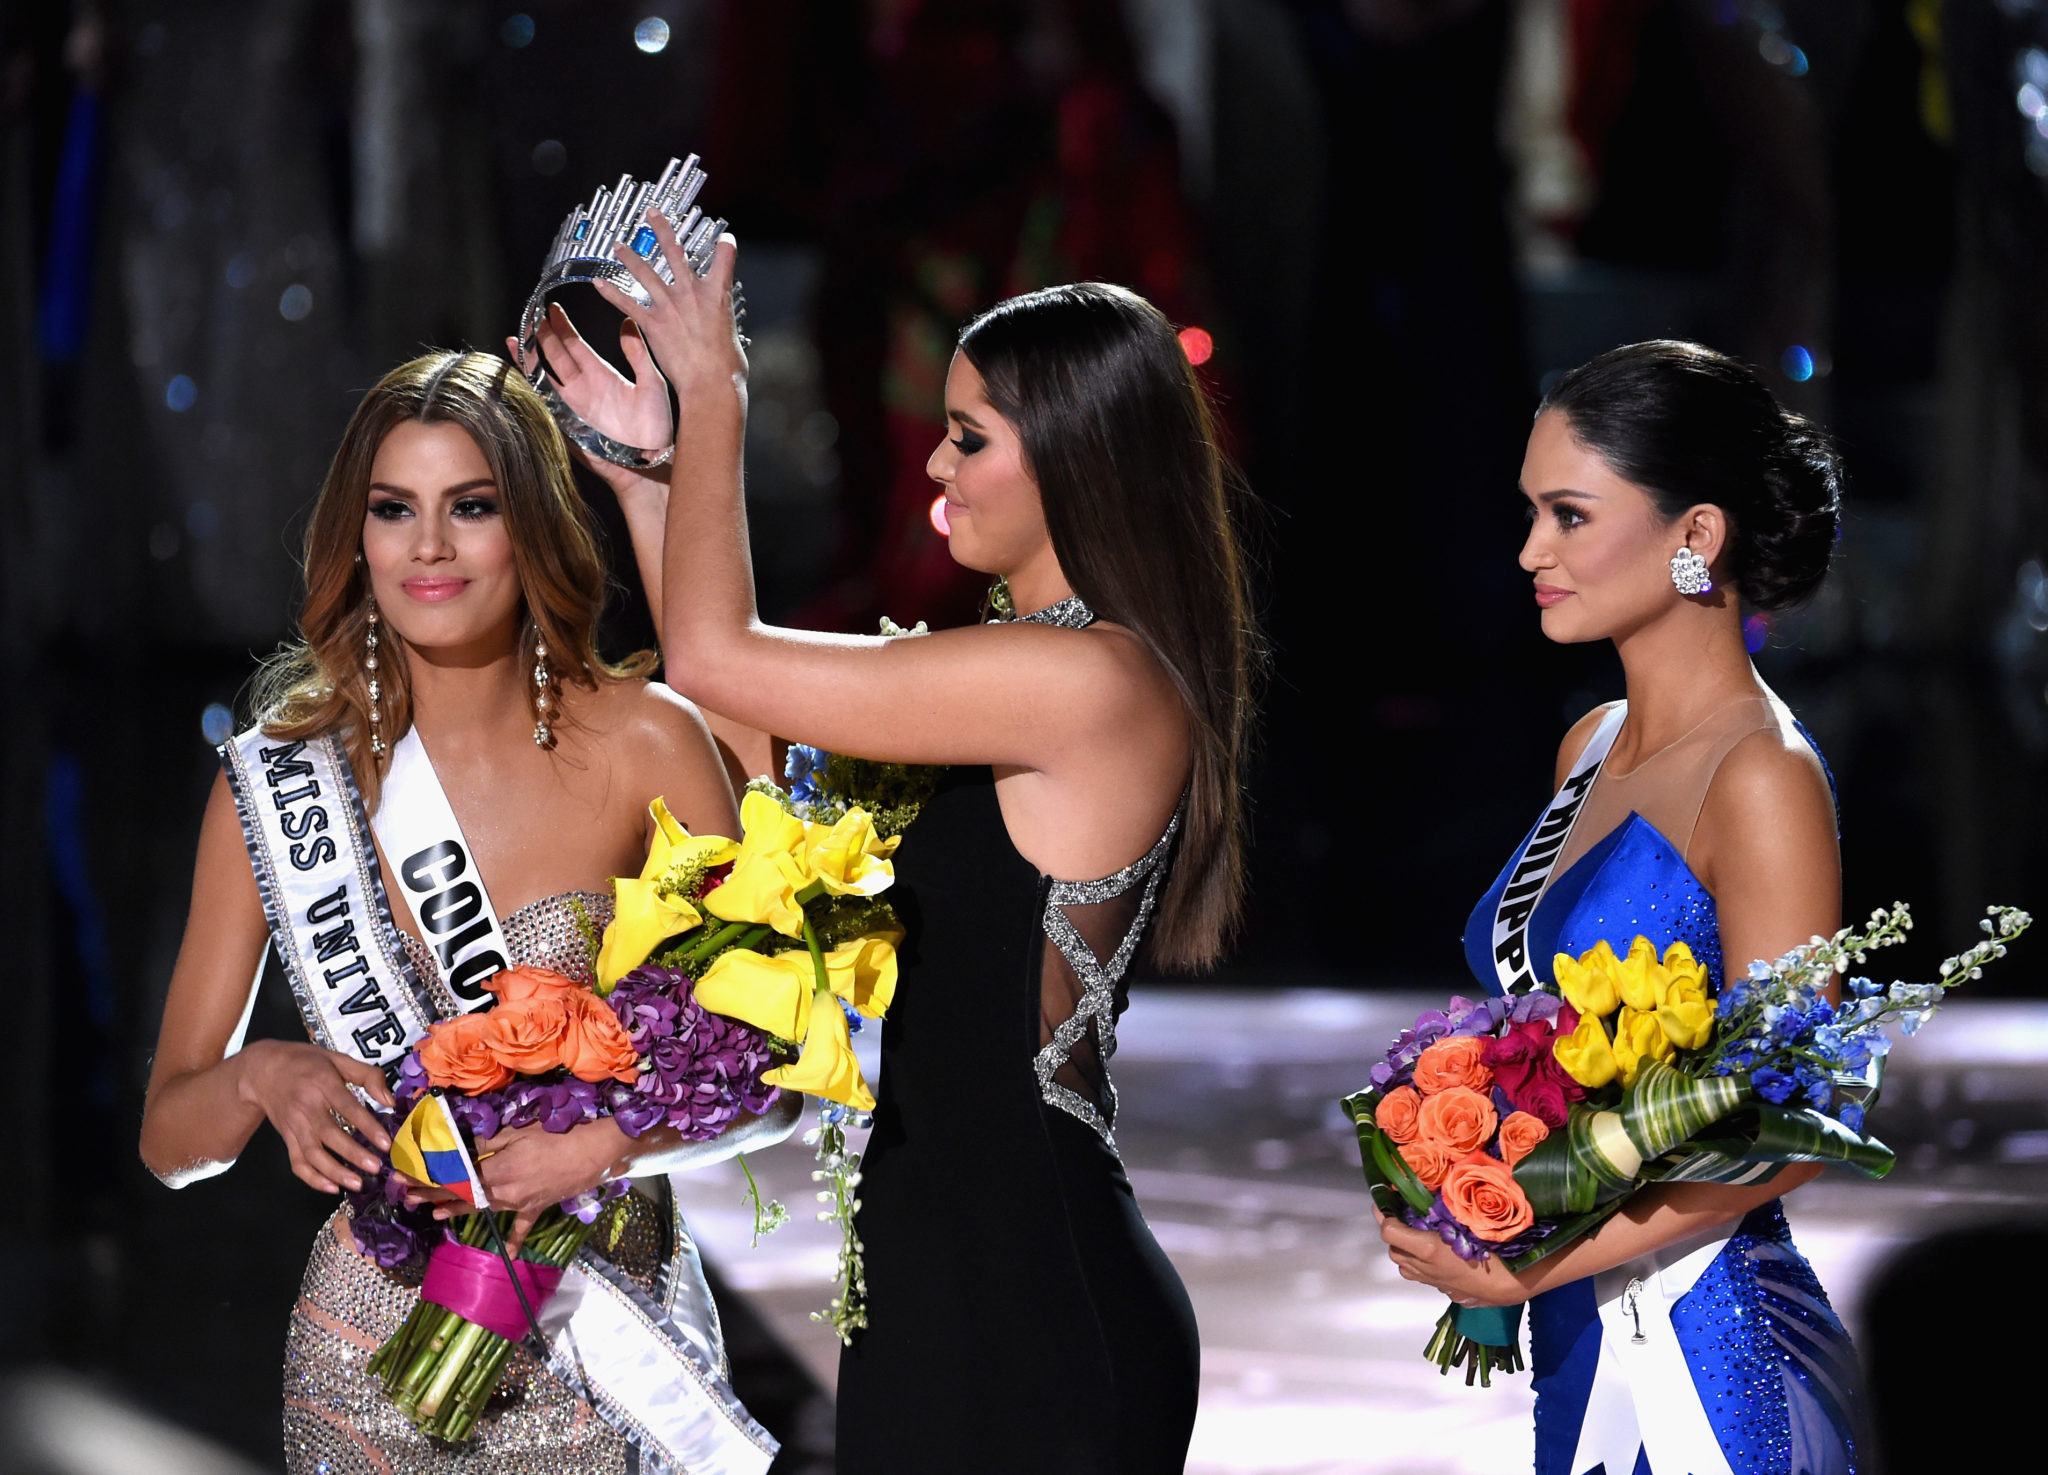 the 2015 Miss Universe Pageant at The Axis at Planet Hollywood Resort & Casino on December 20, 2015 in Las Vegas, Nevada.